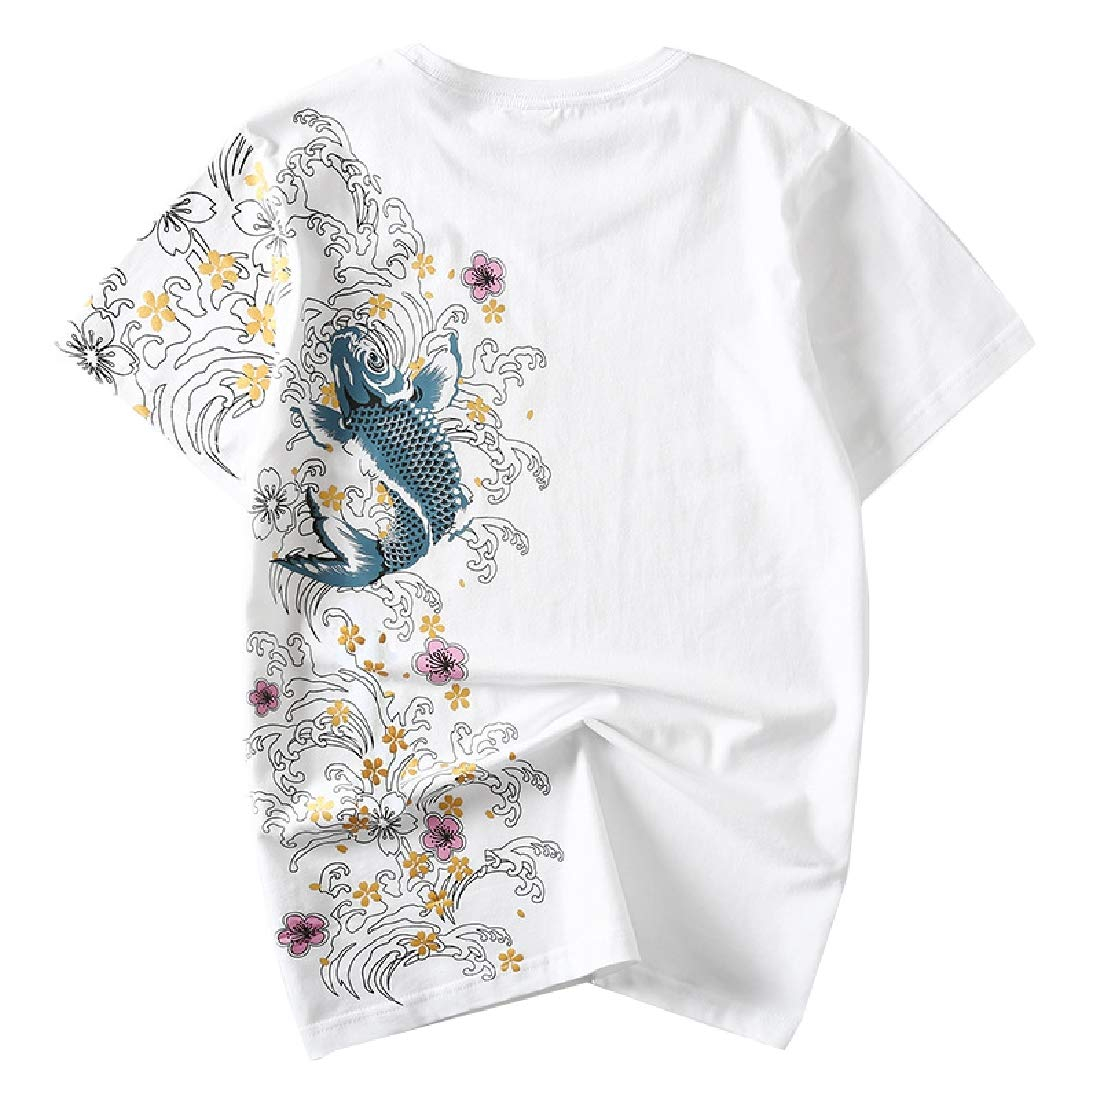 Coolred-Men 100/% Cotton Chinese Style Ethnic Tee Embroidered T-Shirt